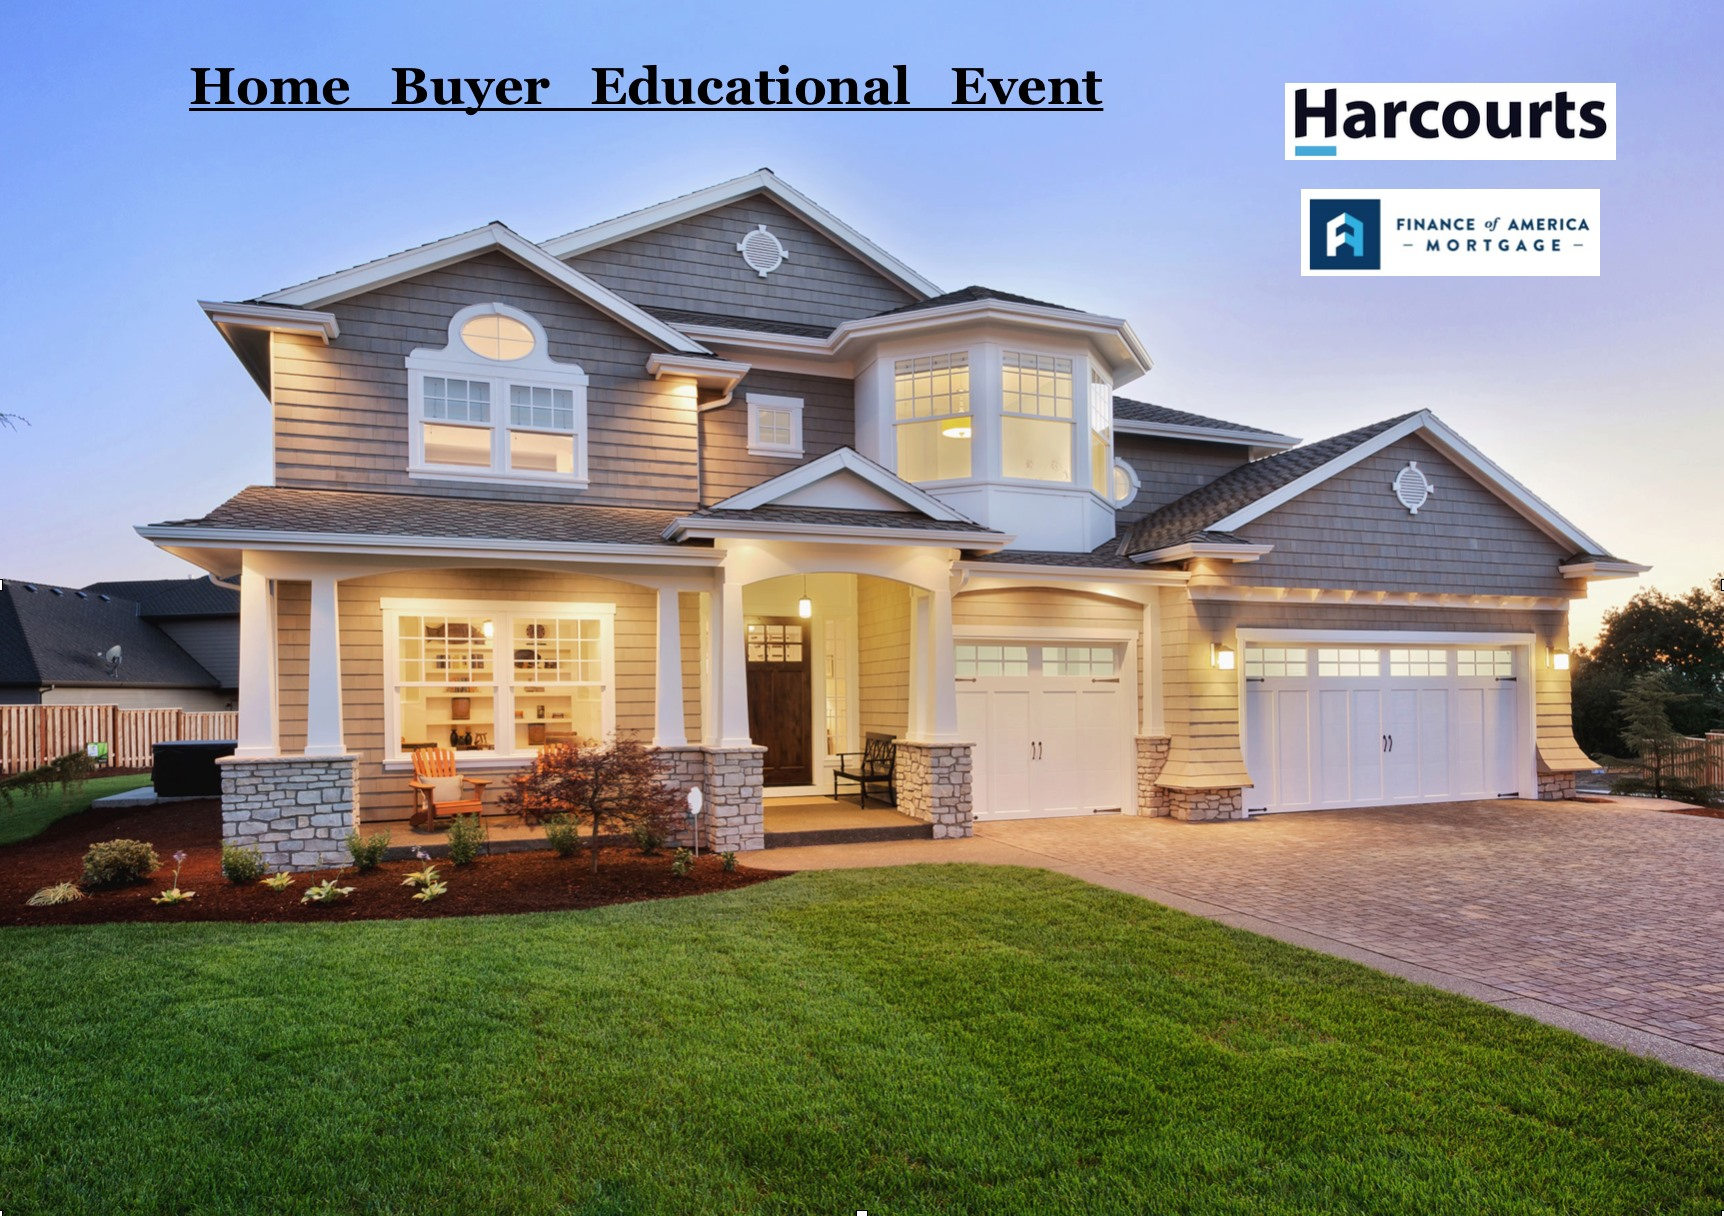 Home Buyer Educational Event